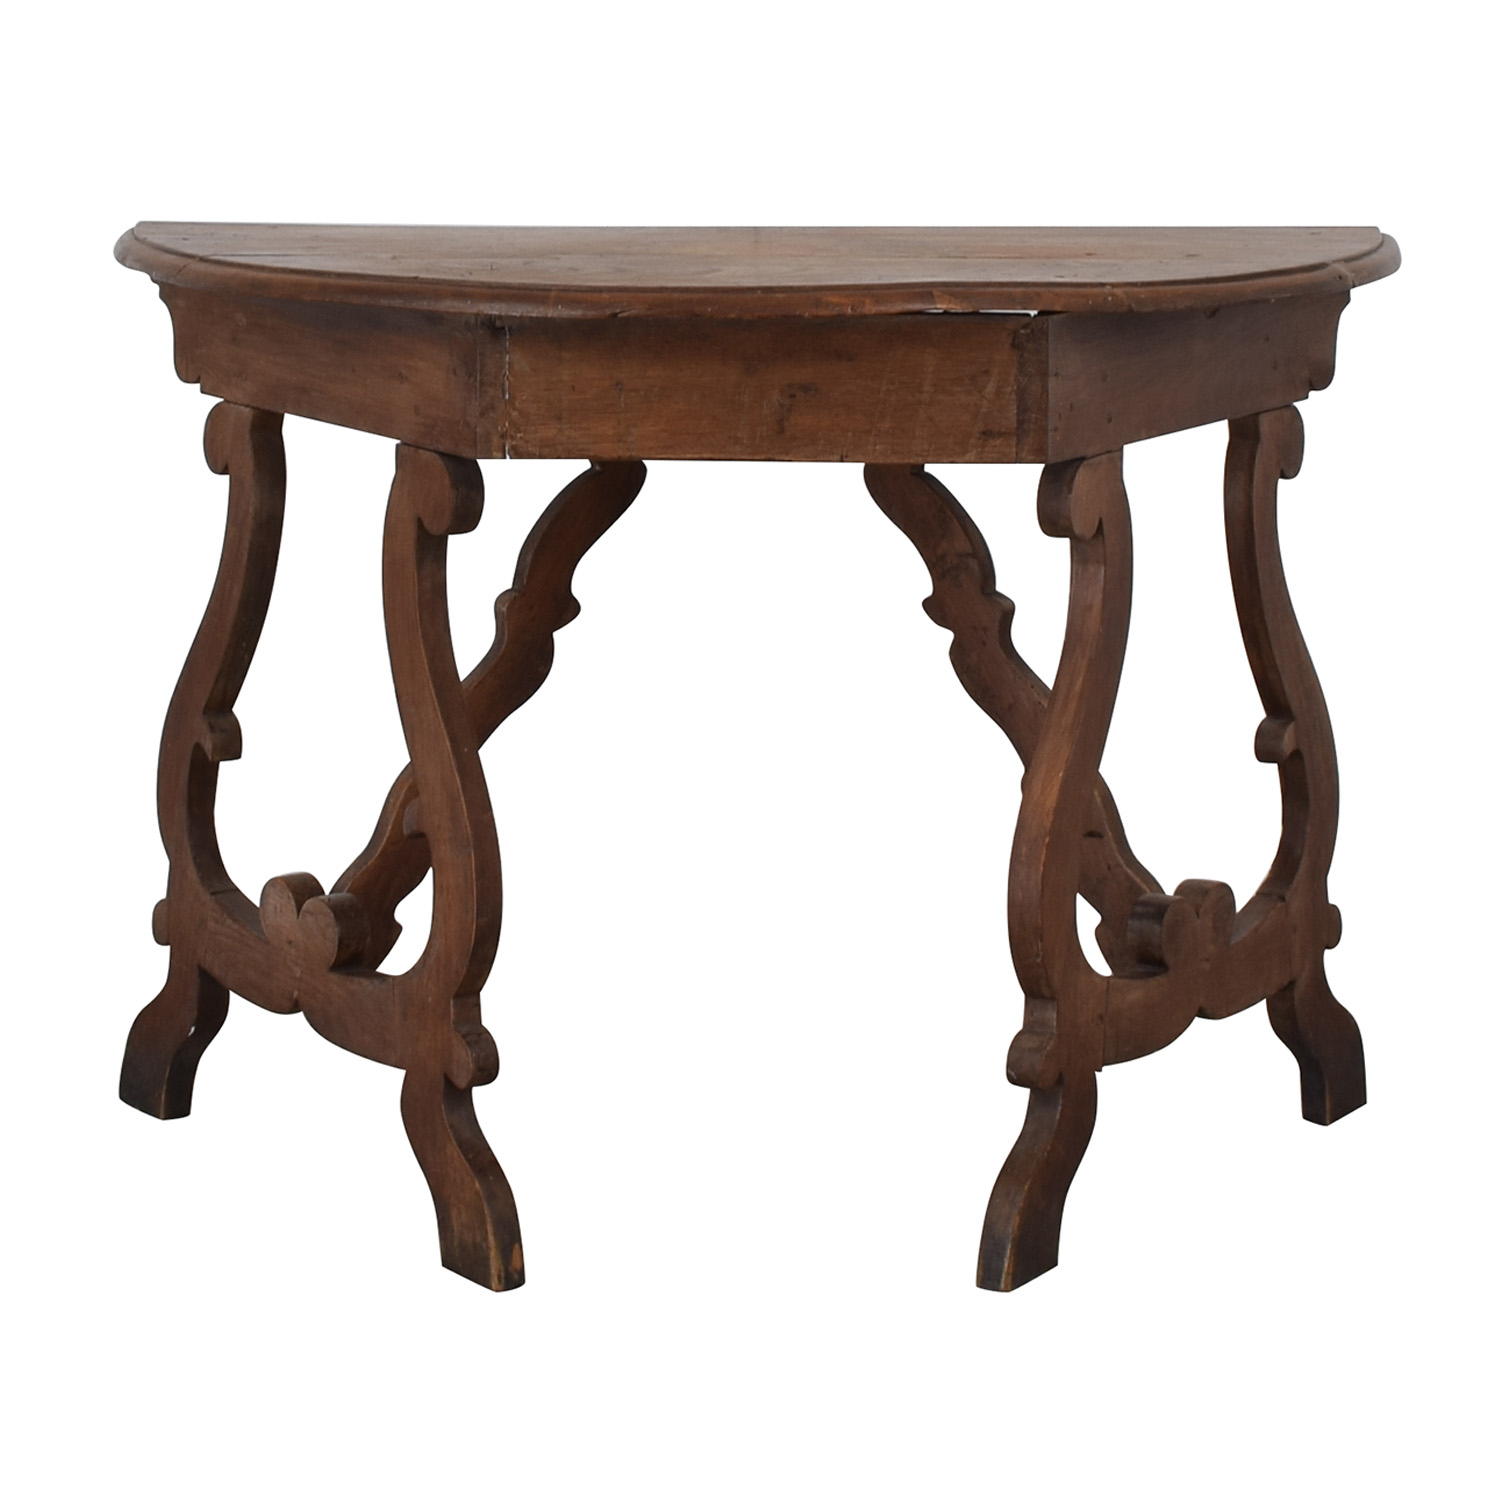 Rustic Entry Table on sale